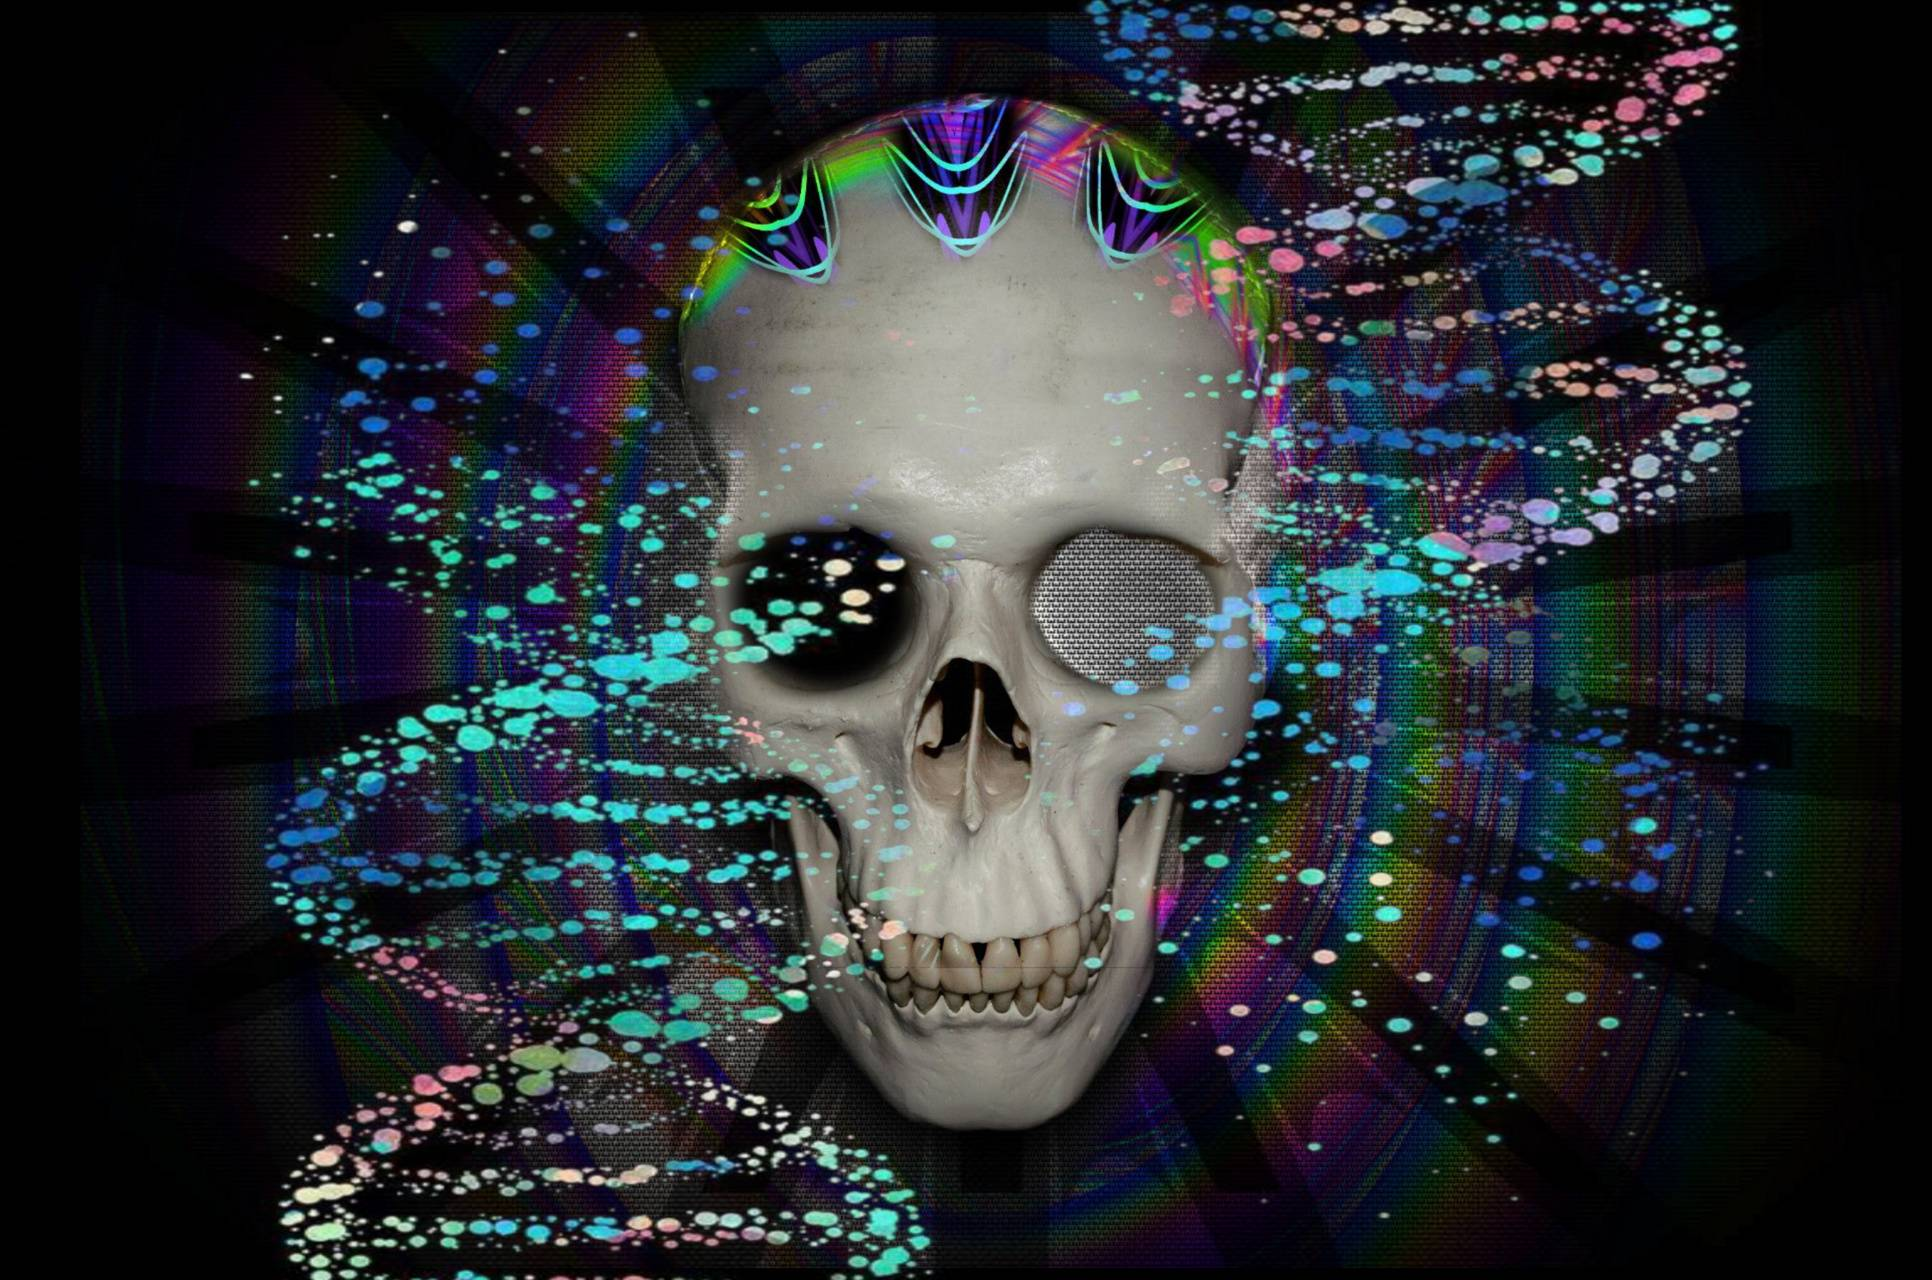 Techno dna skull